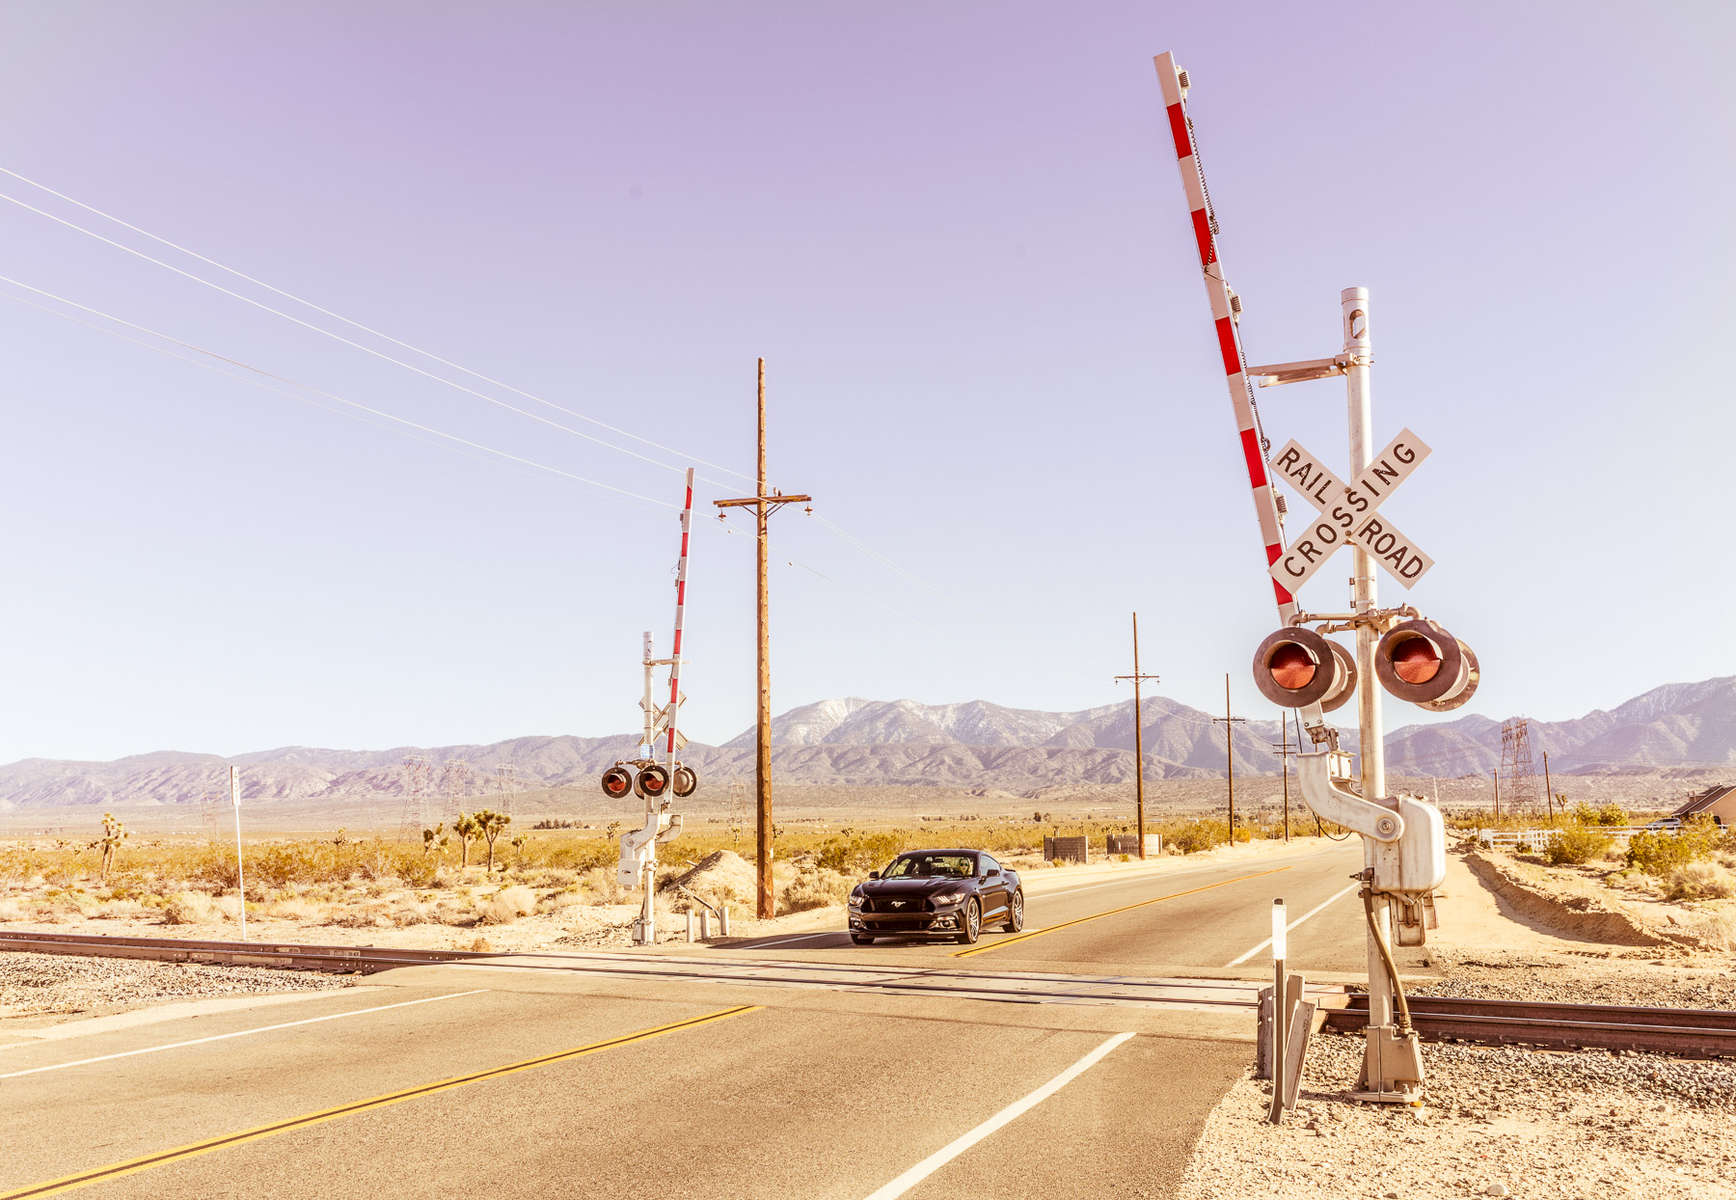 Photograph of 2016 Ford Mustang driving on desert road near rail road crossing signs  photographed by Red Cup Studio